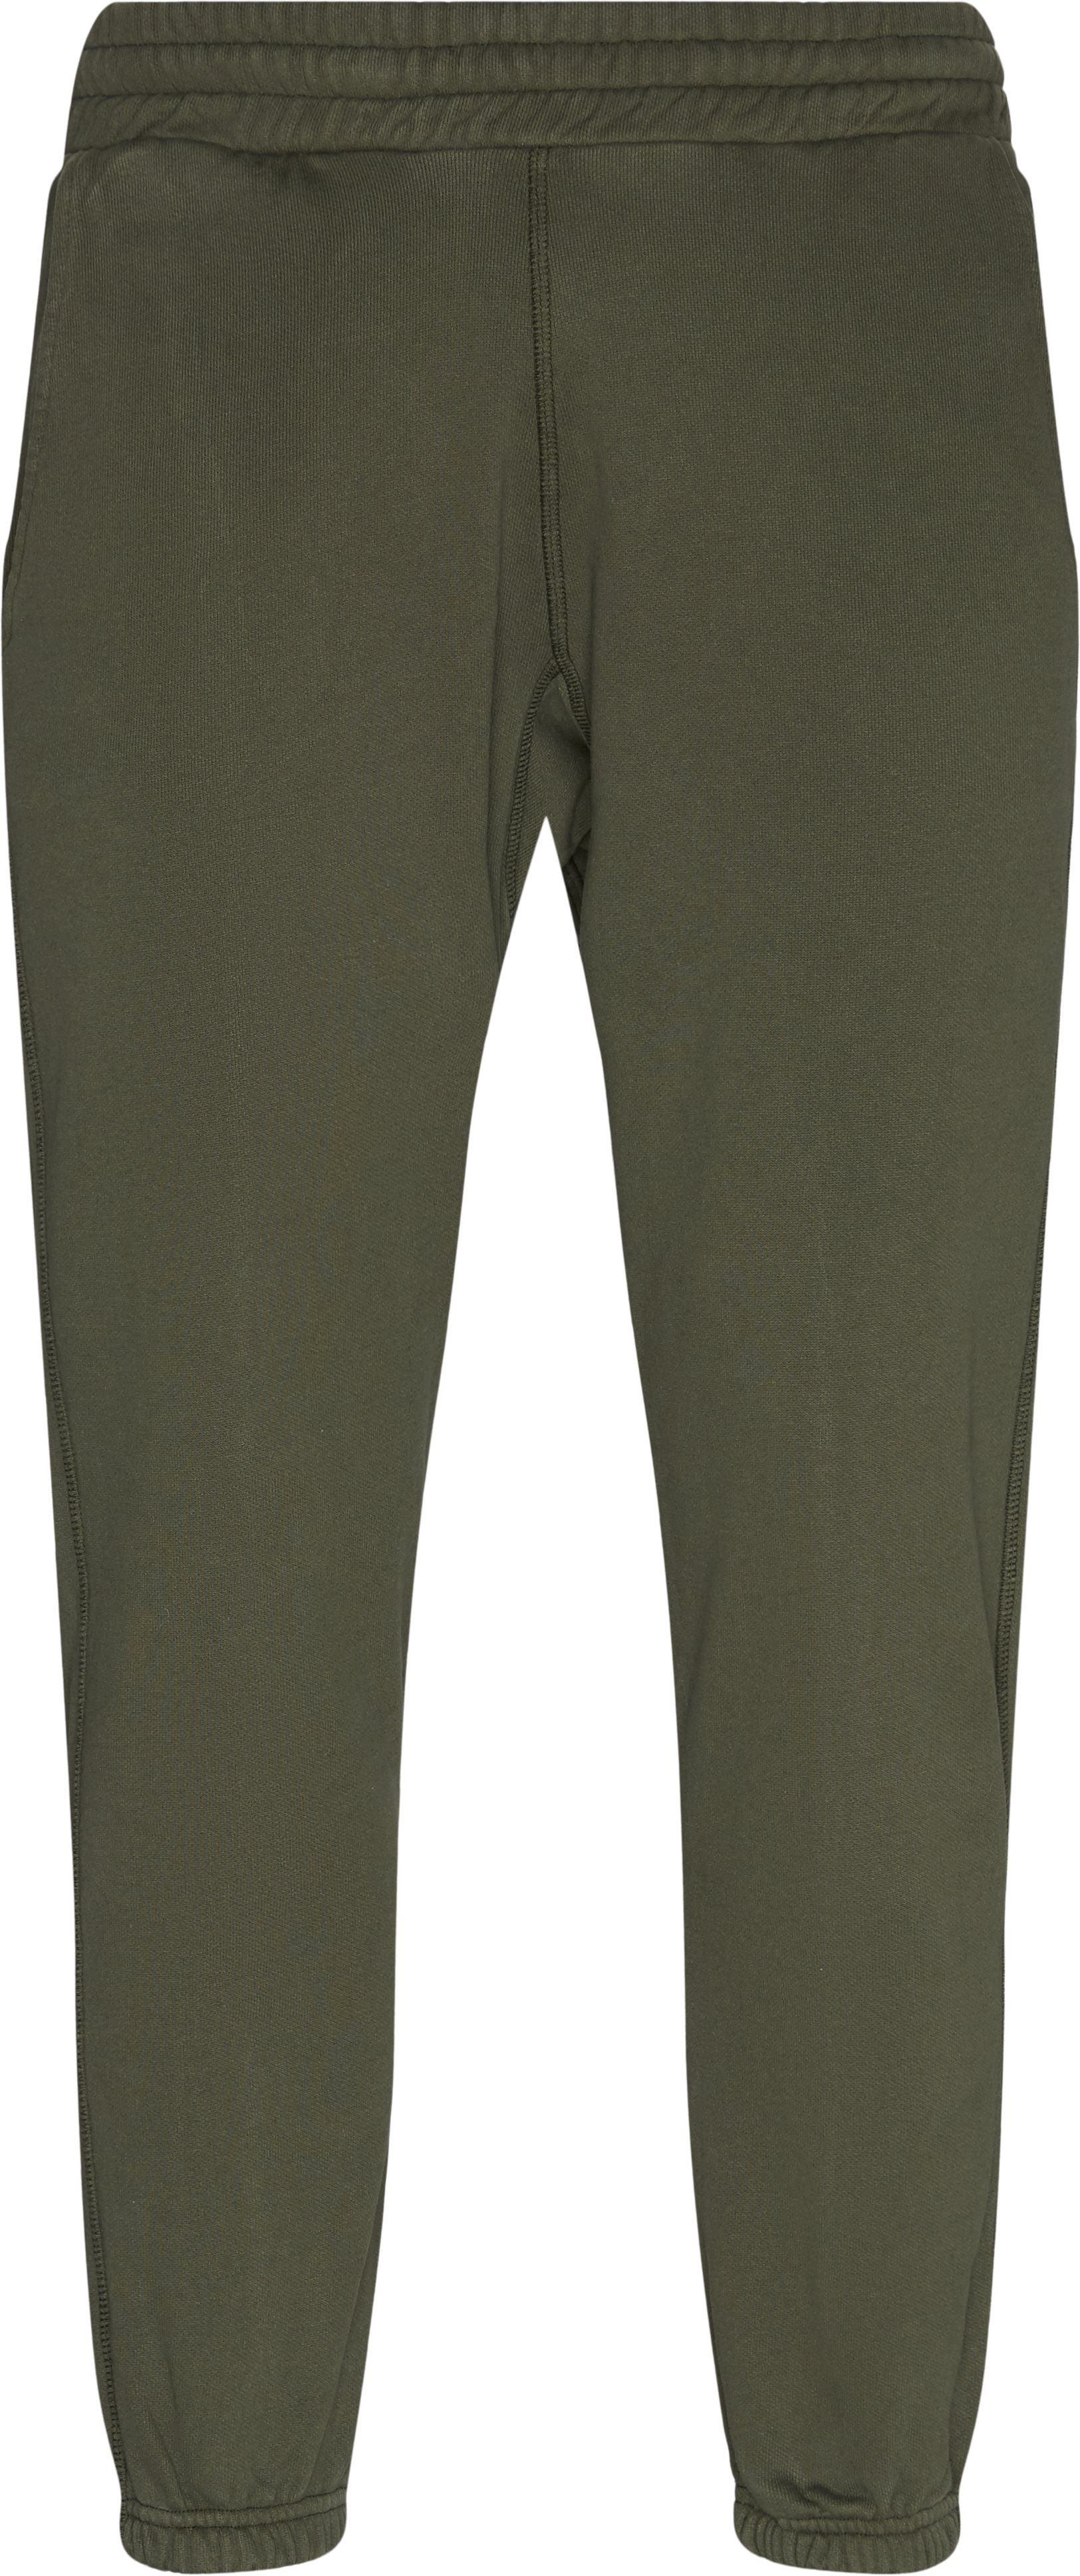 Tiago Sweatpants - Bukser - Regular - Army